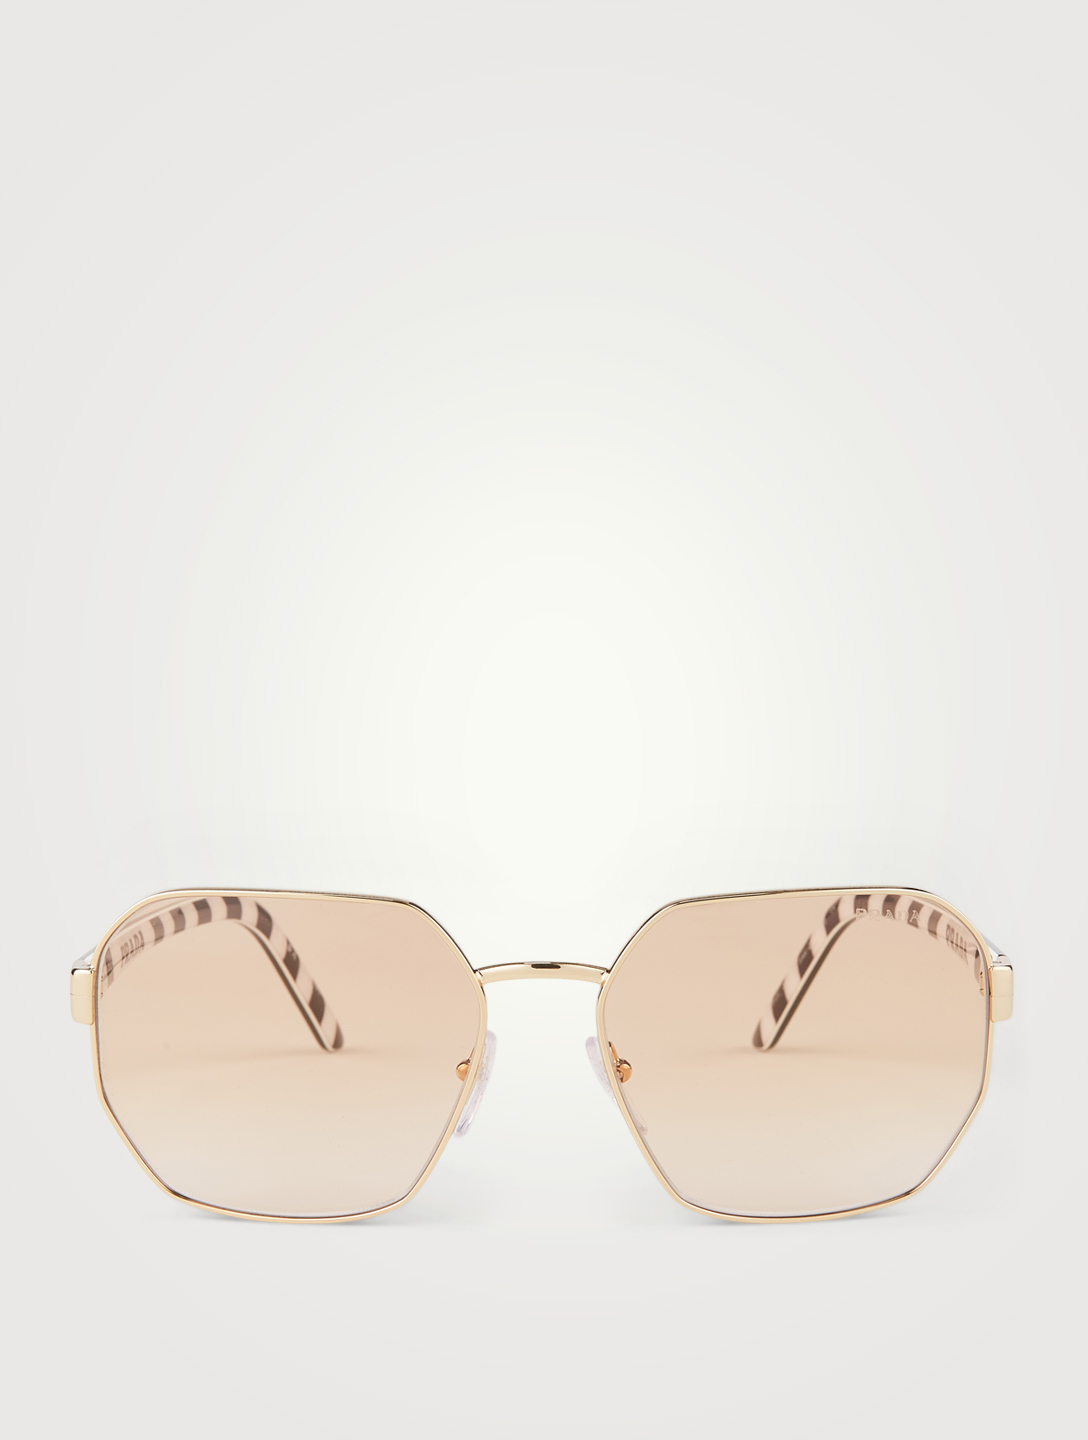 PRADA Millennials Rectangular Aviator Sunglasses Women's Metallic